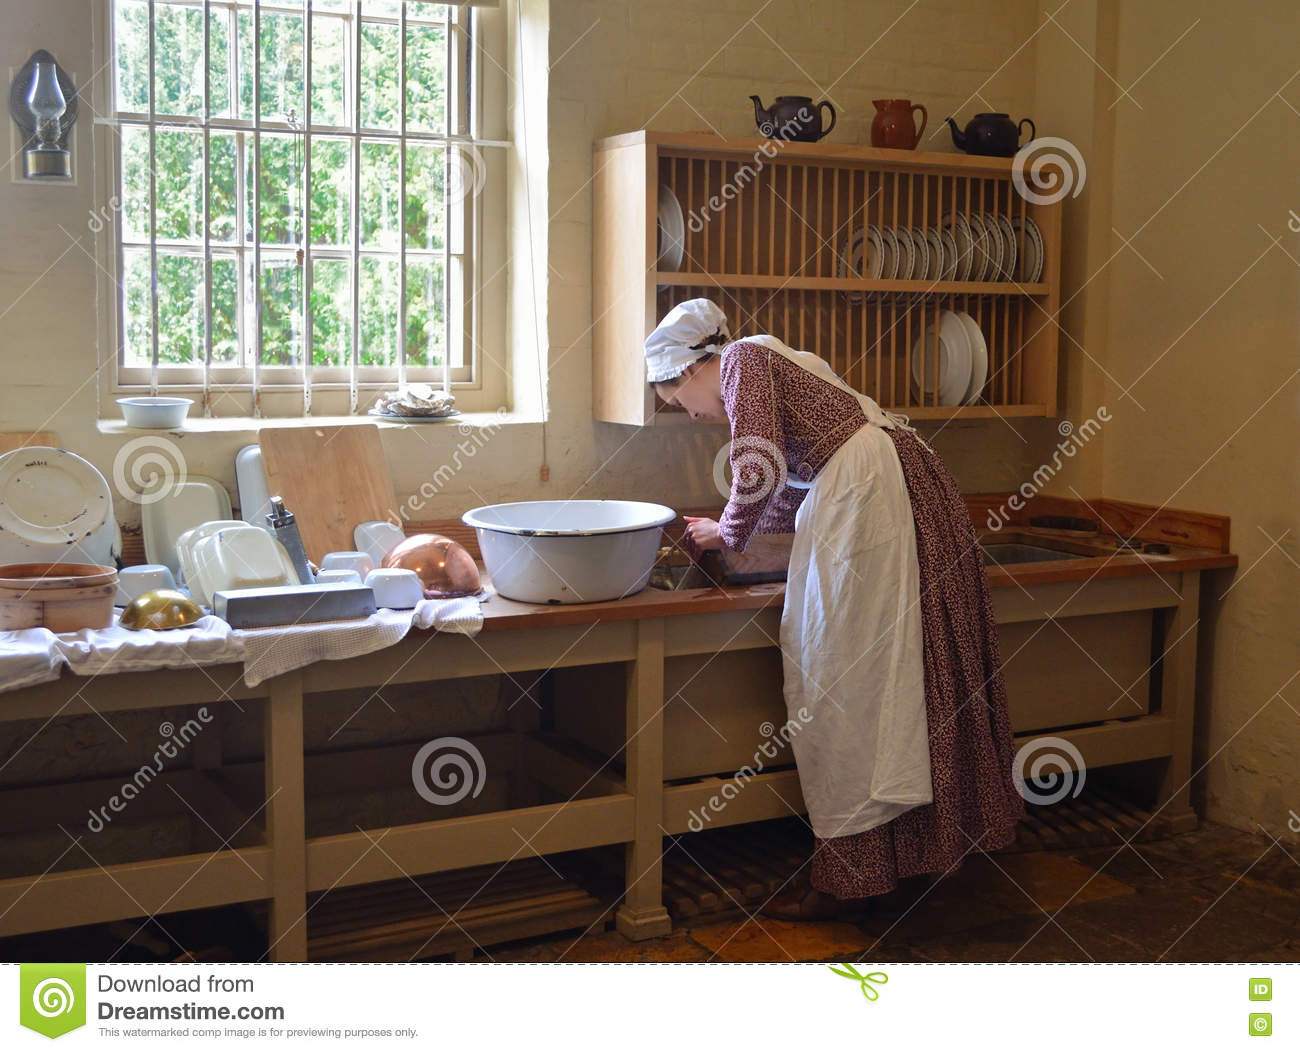 Young woman dressed as victoria kitchen maid washing dishes in sink young woman dressed as victoria kitchen maid washing dishes in sink editorial image image of sink interior 71087980 workwithnaturefo